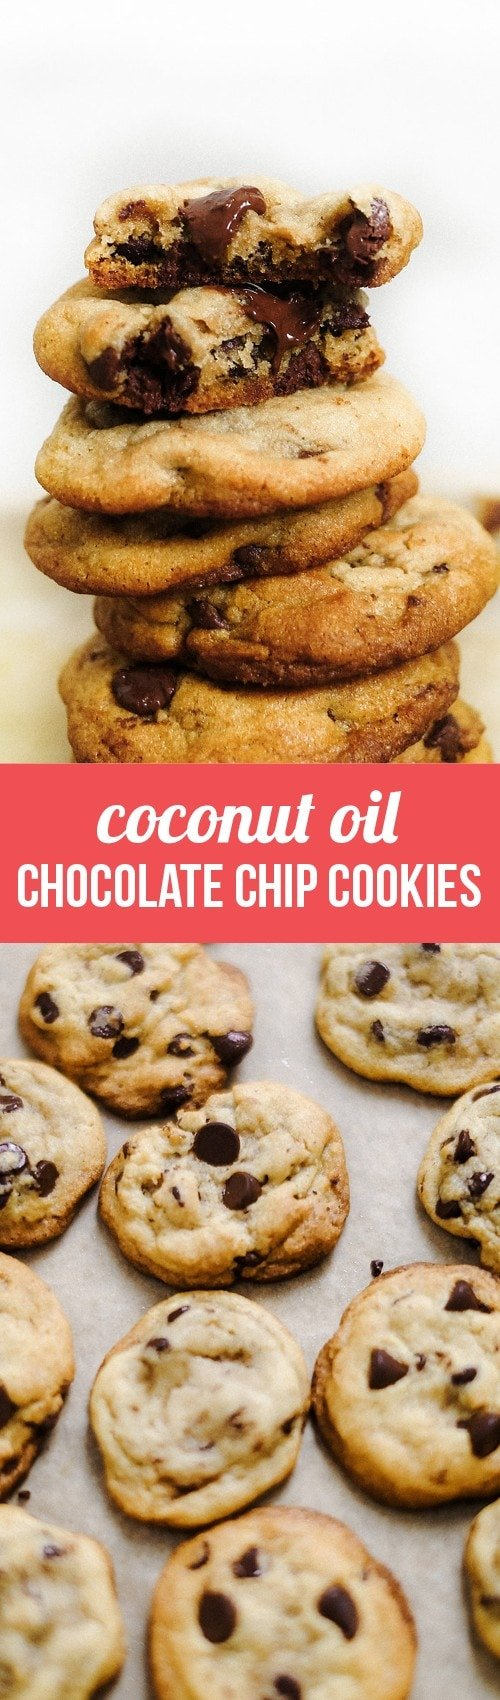 Coconut Oil Chocolate Chip Cookies are dairy-free with just a hint of coconut flavor but all of the taste and texture you love in a chocolate chip cookie.